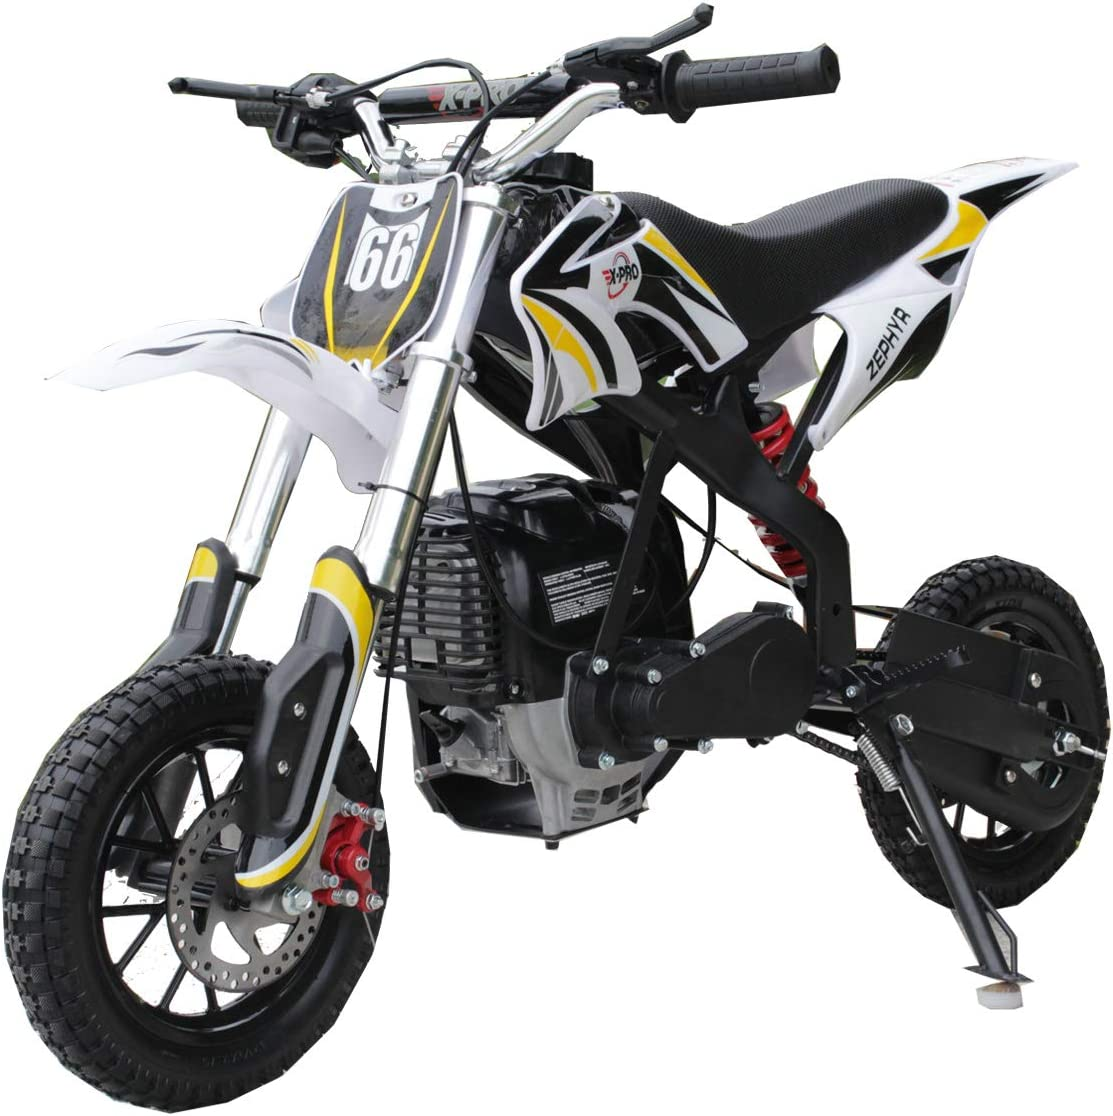 X-PRO Zephyr 40cc Kids Mini Dirt Bike Pit Bike Dirt Bikes Gas Power Bike Off Road Motorcycle with Gloves Googles and Face Mask